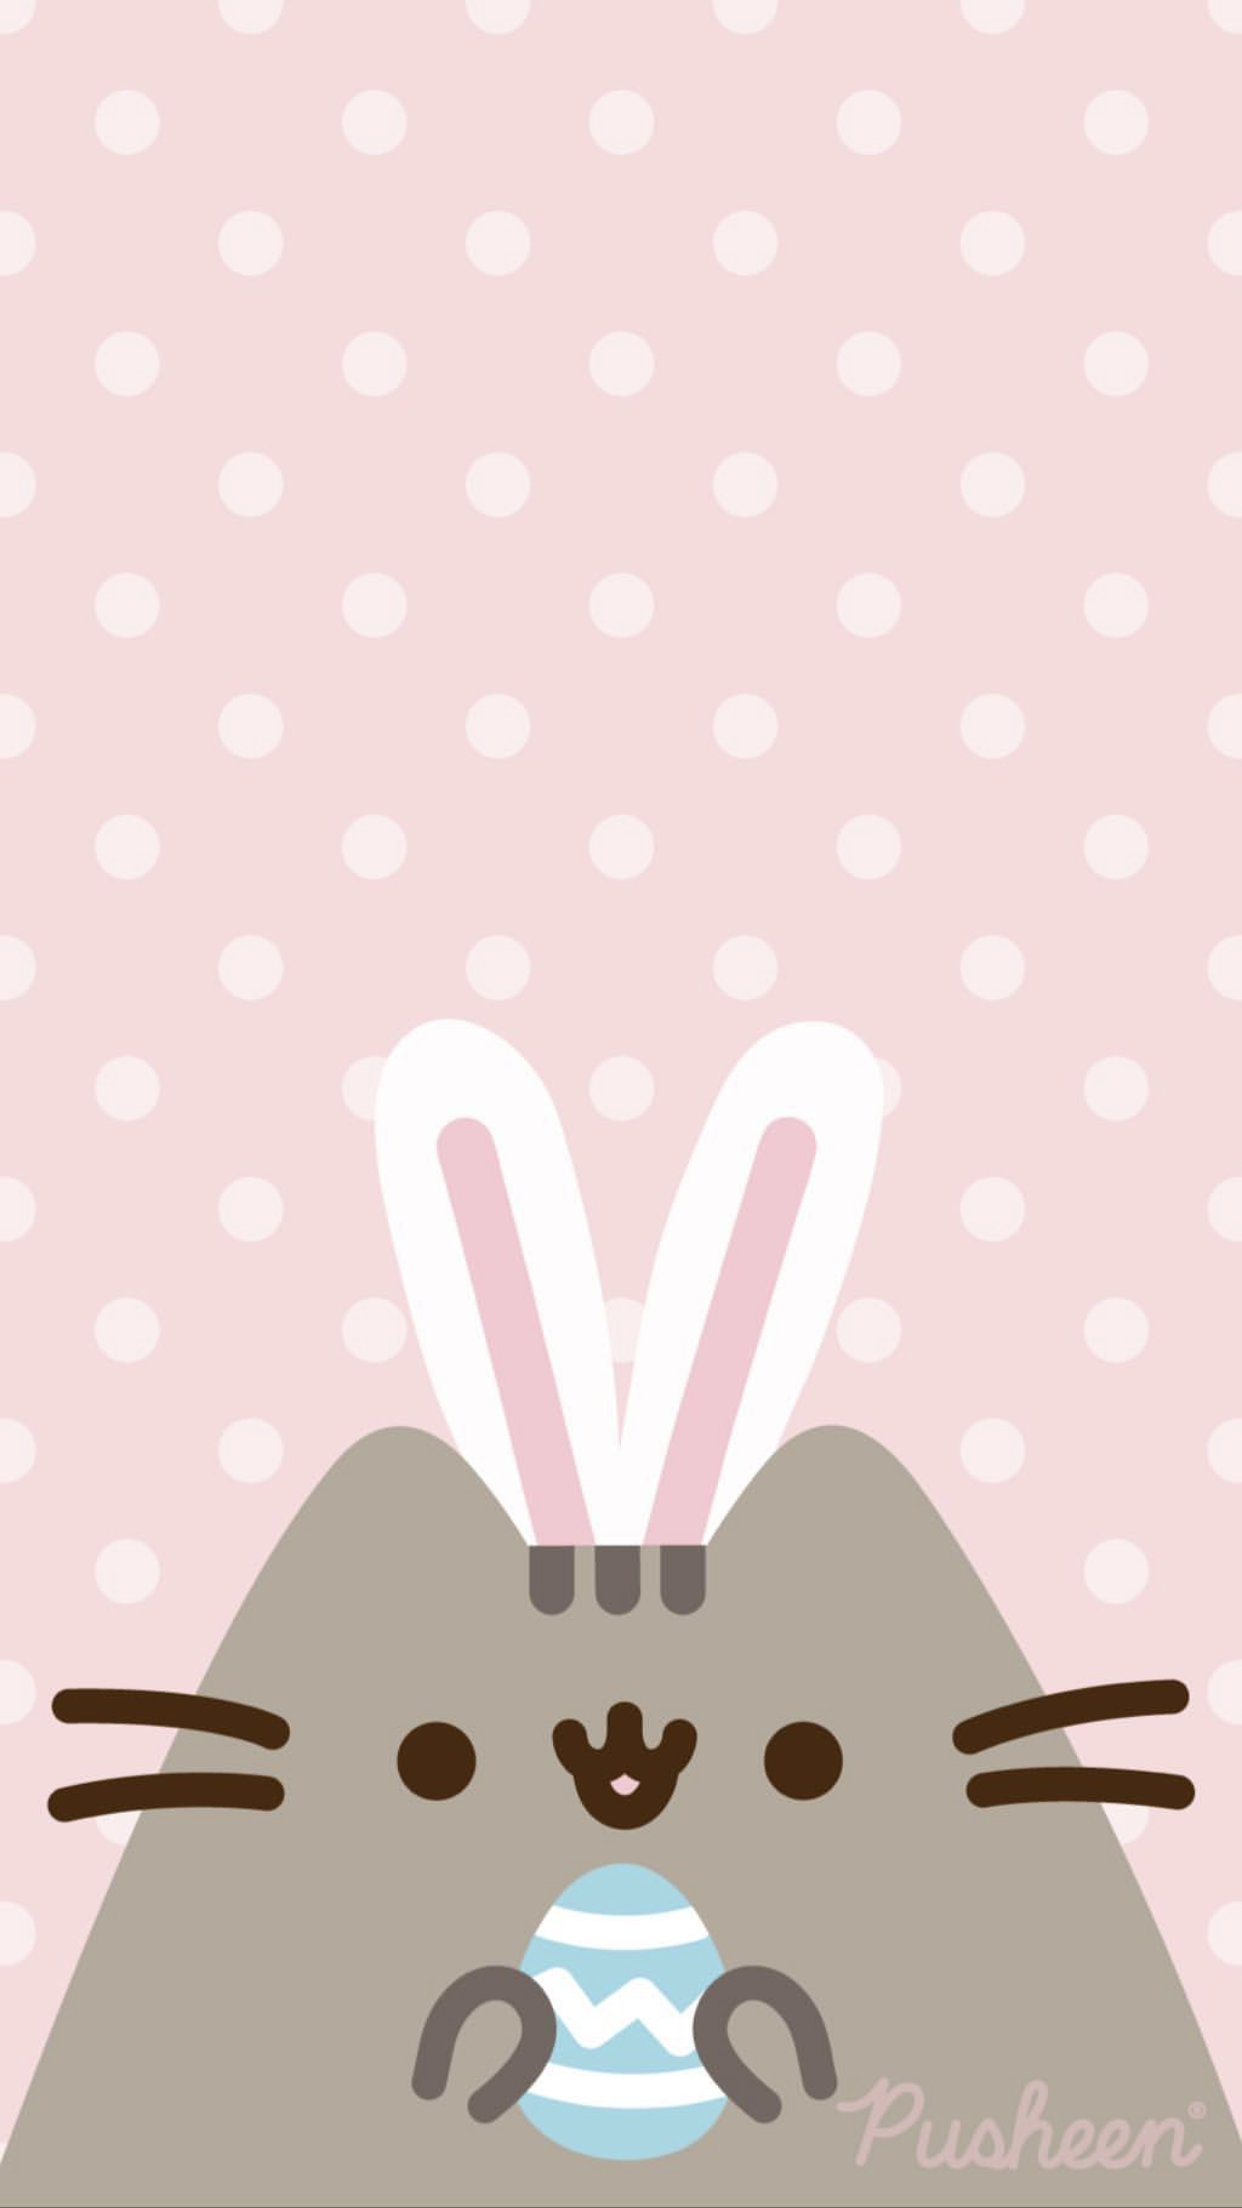 Pusheen The Cat Floral Pastels Spring Iphone Wallpaper Easter